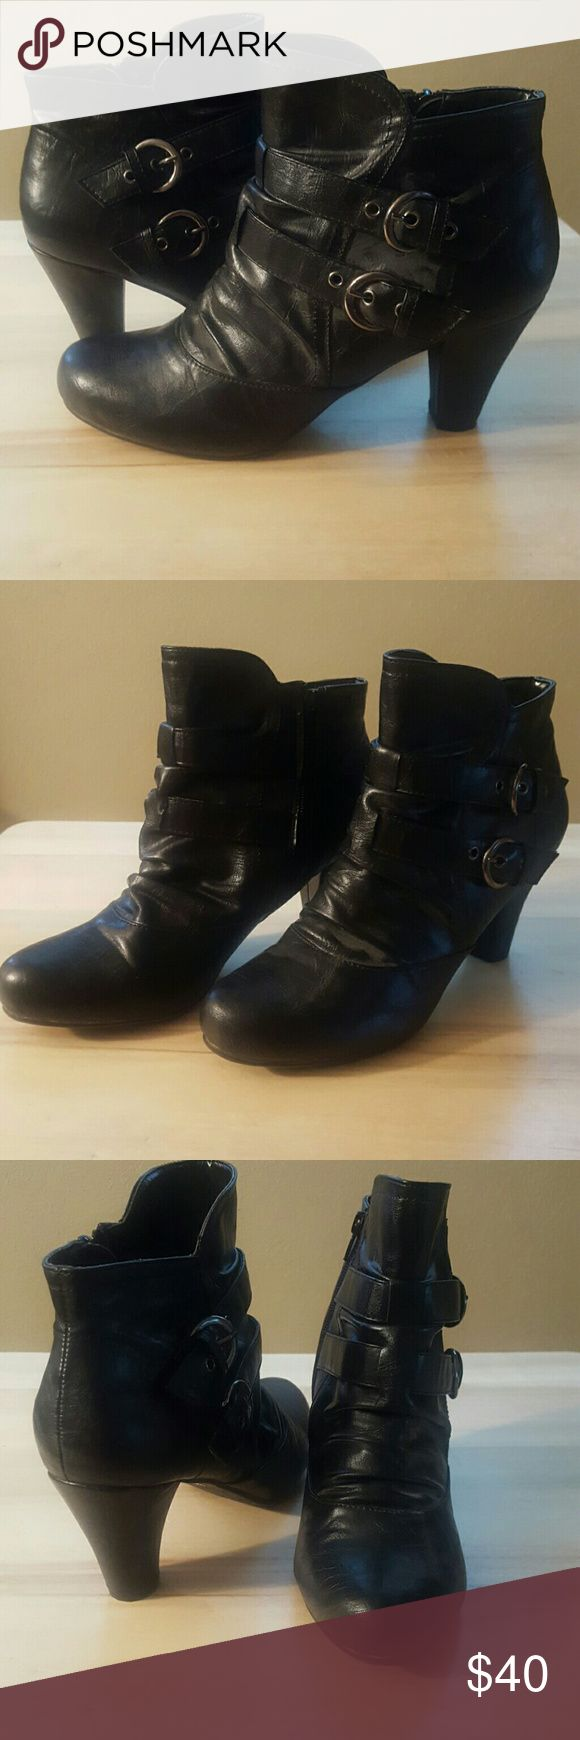 "Black Ankle Boots Hot Kiss black zip up ankles boots. Size is 9.5. Buckles are silver. Heel is around 2.5"". A small scuff is on one heel but I think it's just adhesive. Worn maybe once but not even for a full day. Hot Kiss Shoes Ankle Boots & Booties"